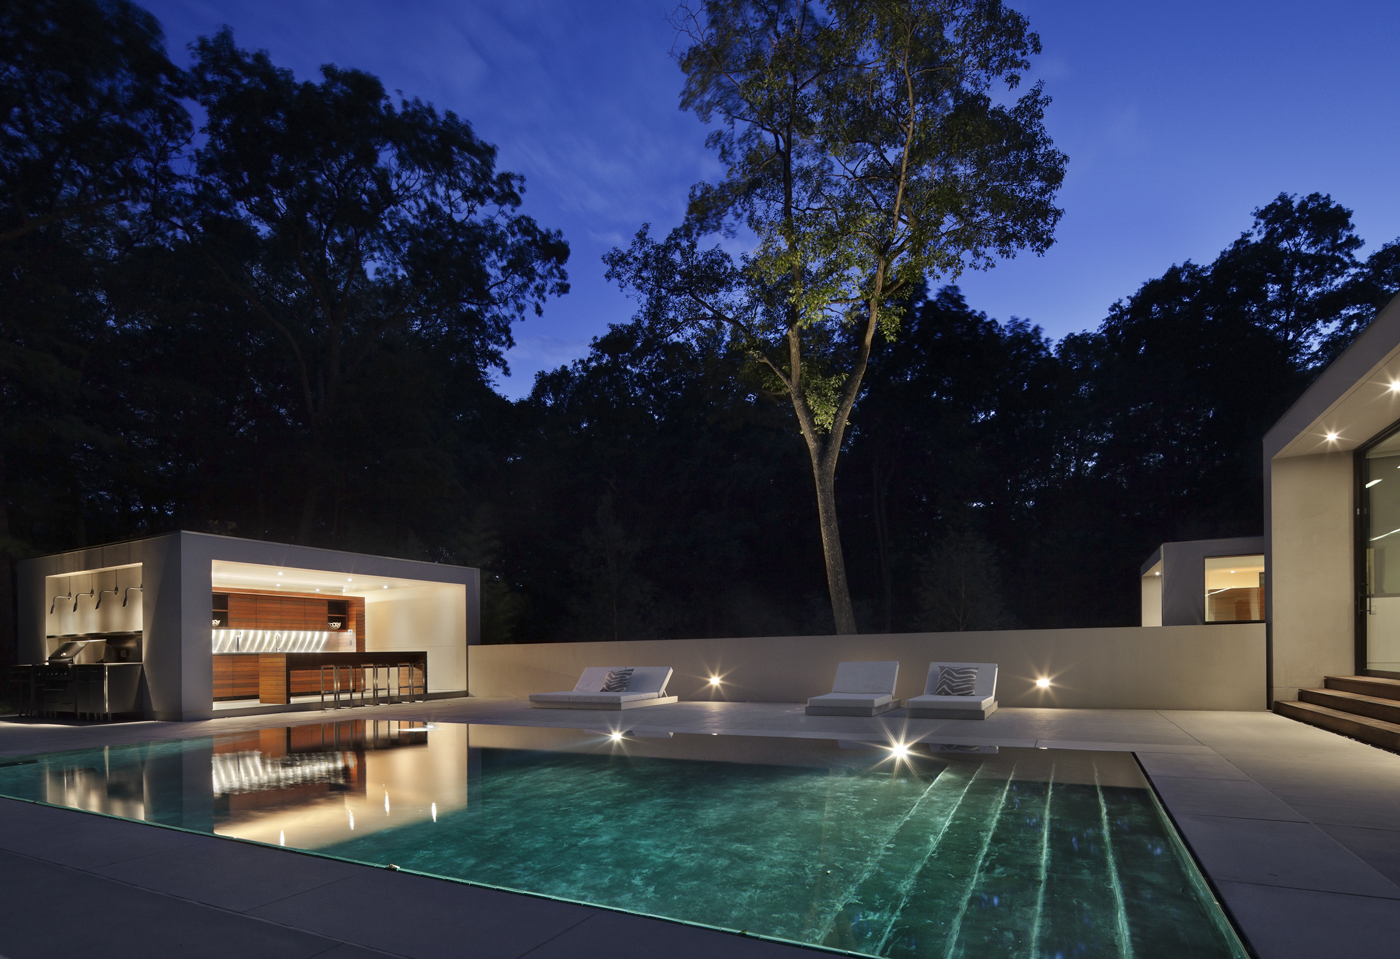 amazing award winning pool and outdoor kitchen